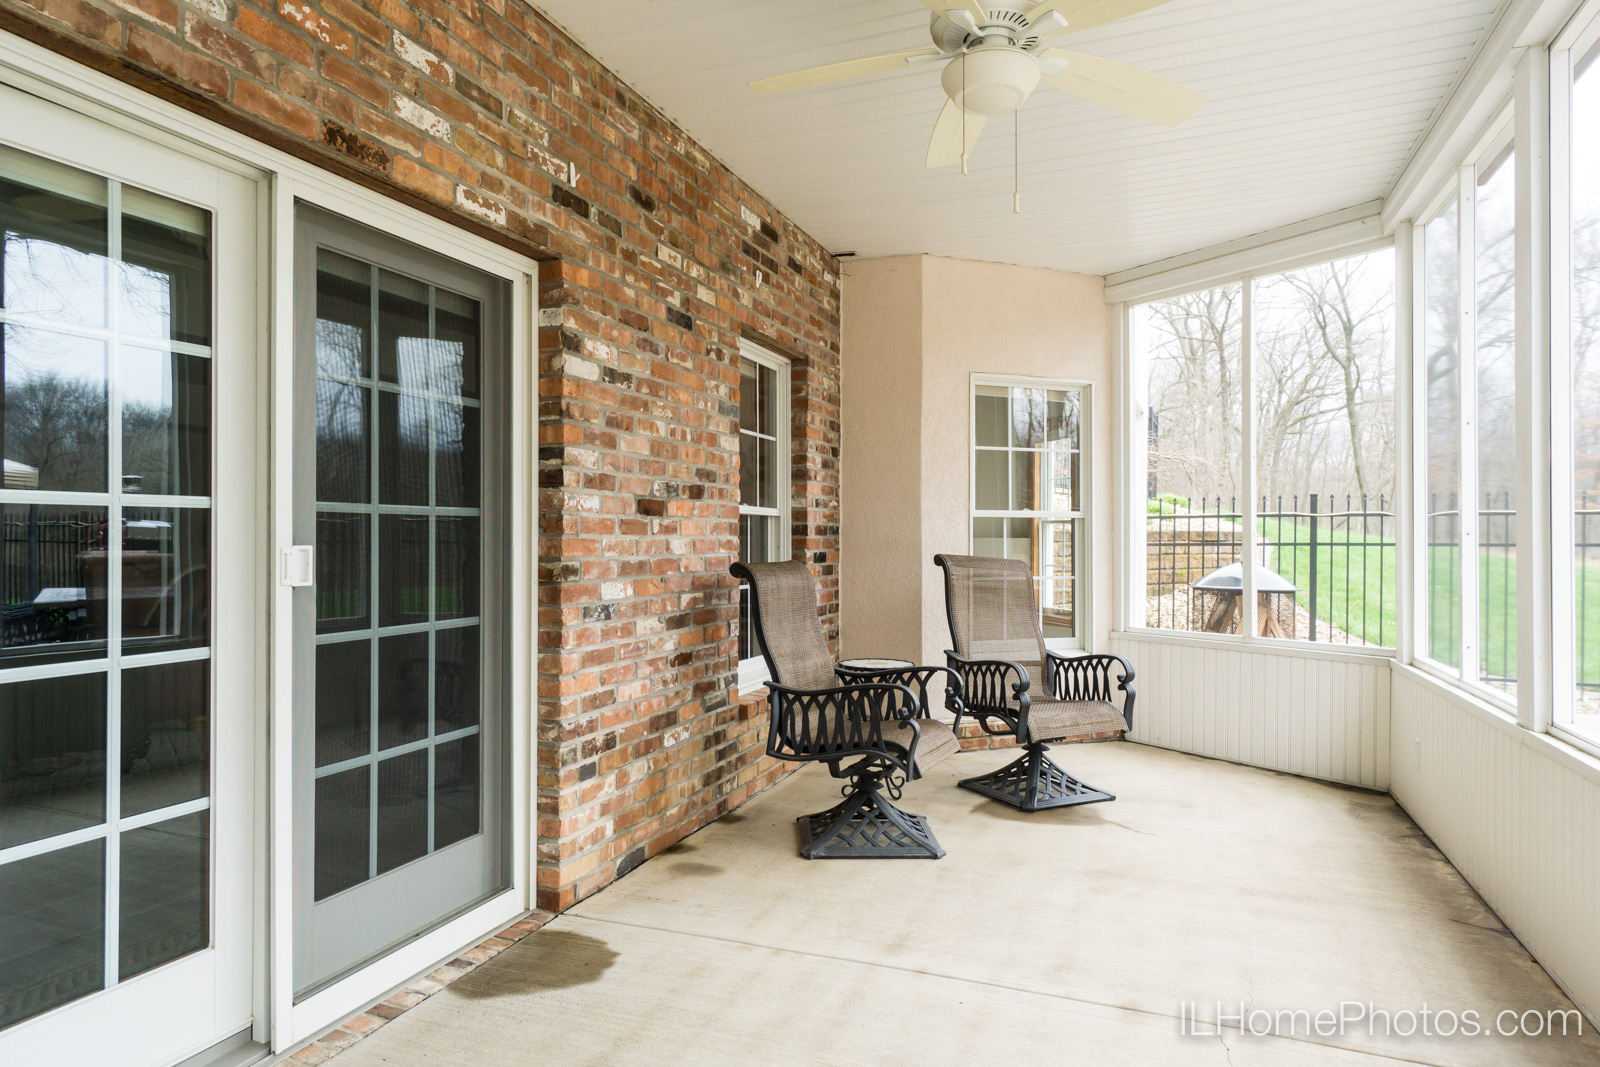 Screened-in porch photograph for real estate :: Illinois Home Photography by Michael Gowin, Lincoln, IL